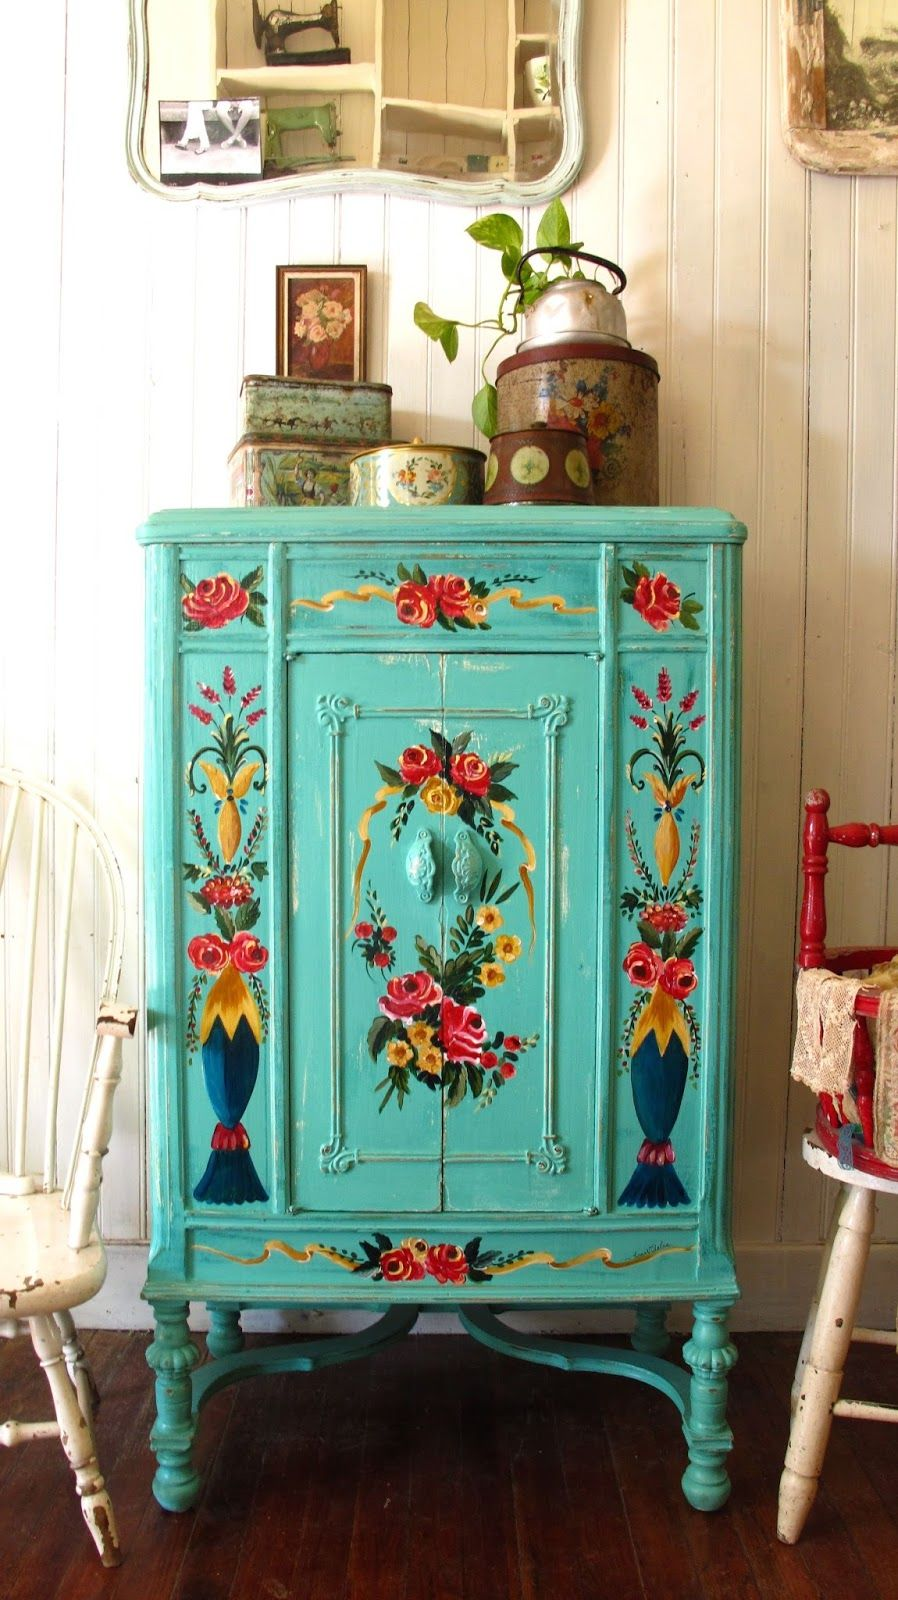 Beautifully Painted Cabinet In A Boho Gypsy Style Using